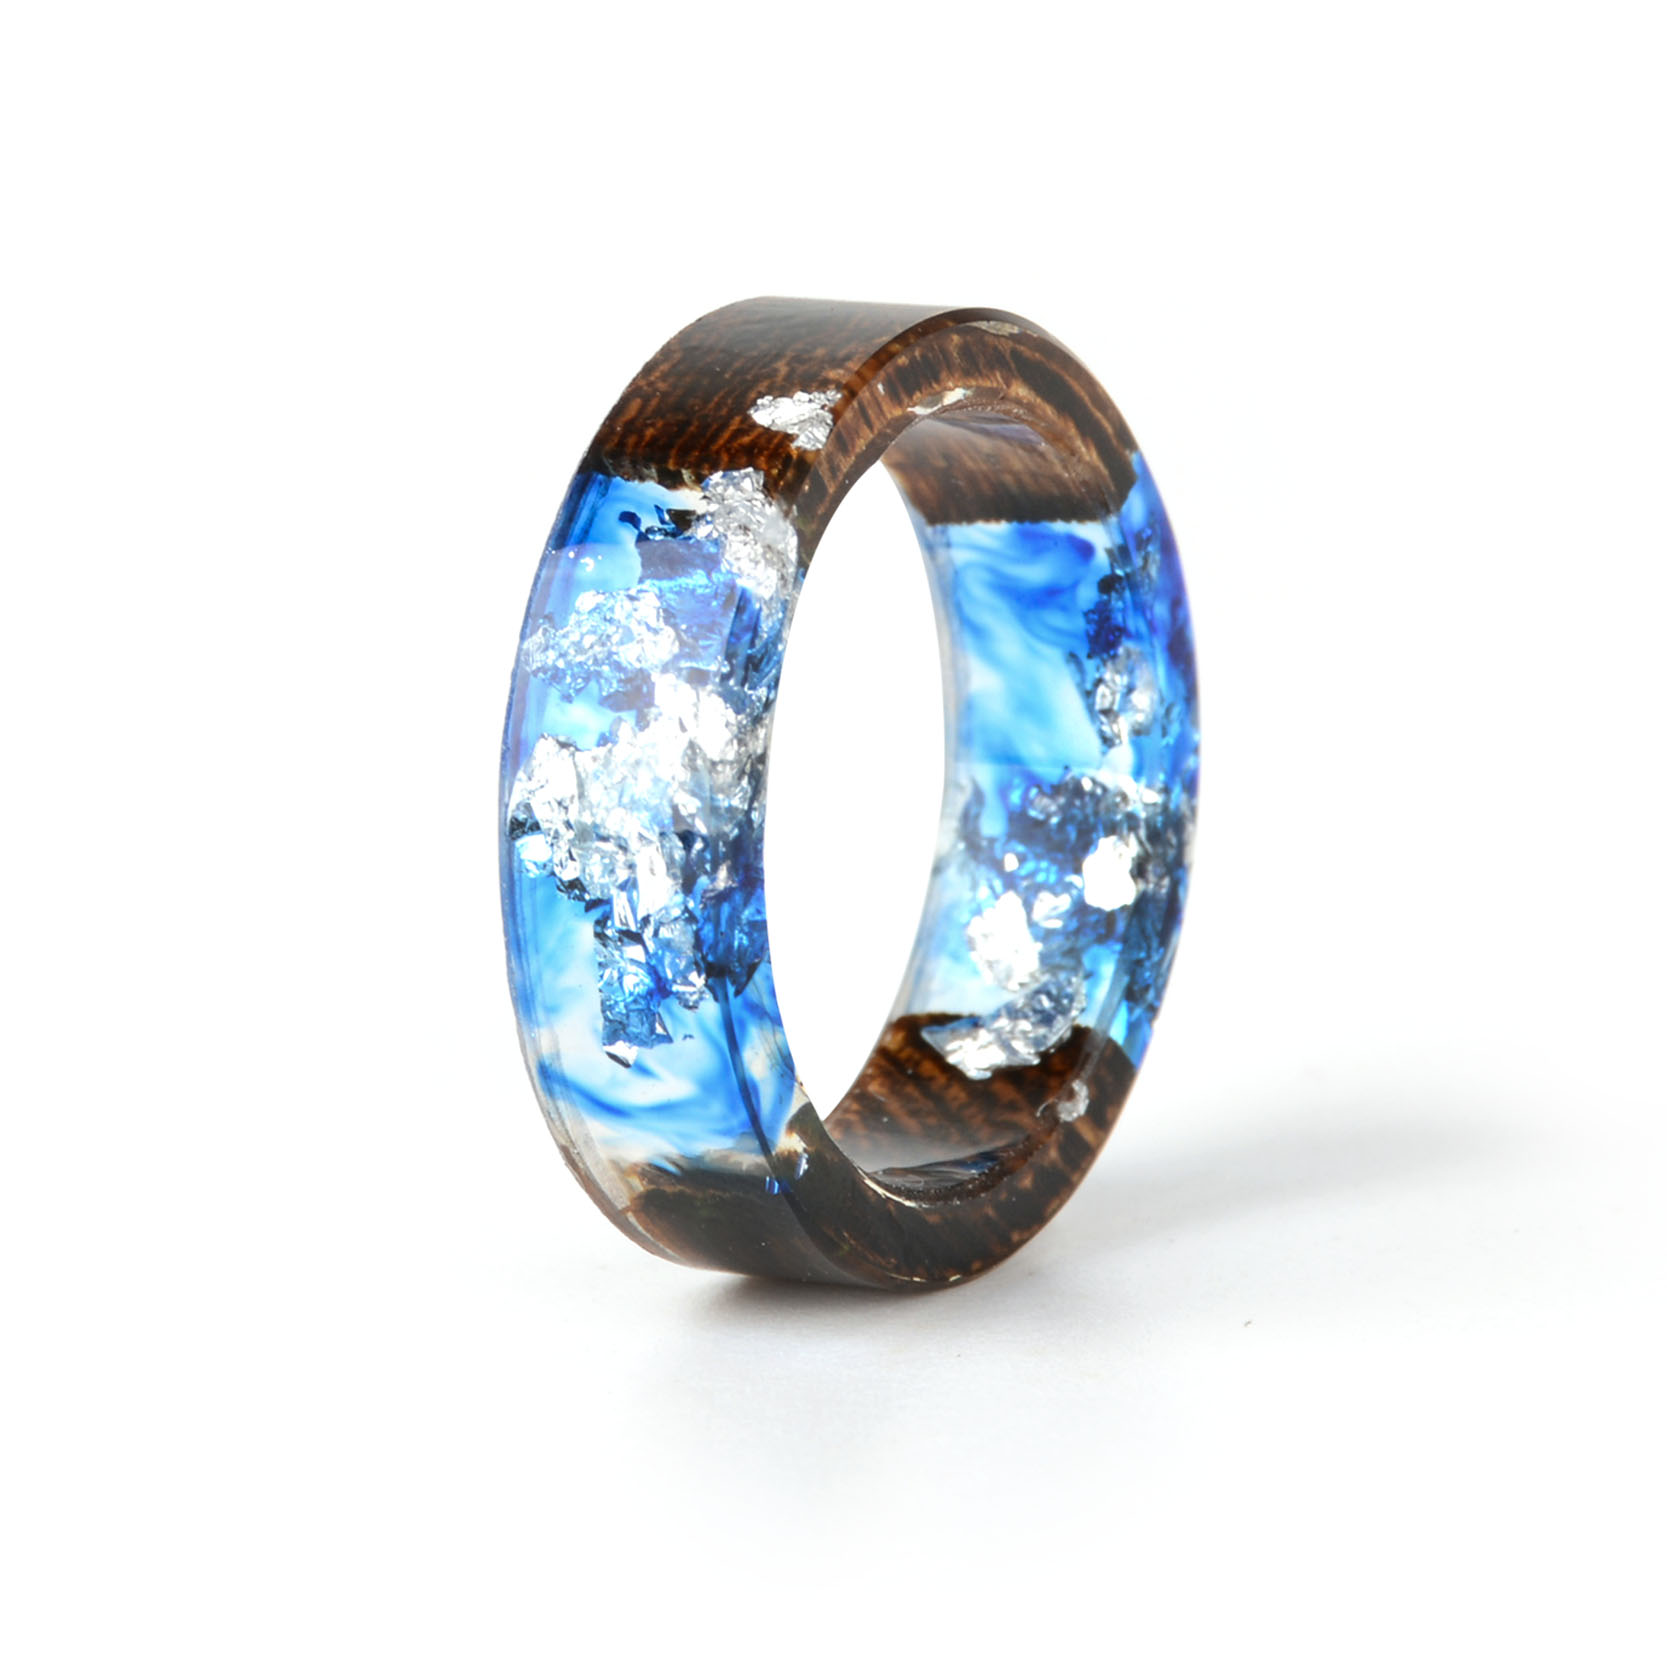 HTB1F JzsrZnBKNjSZFKq6AGOVXa1 - Flower World Ring